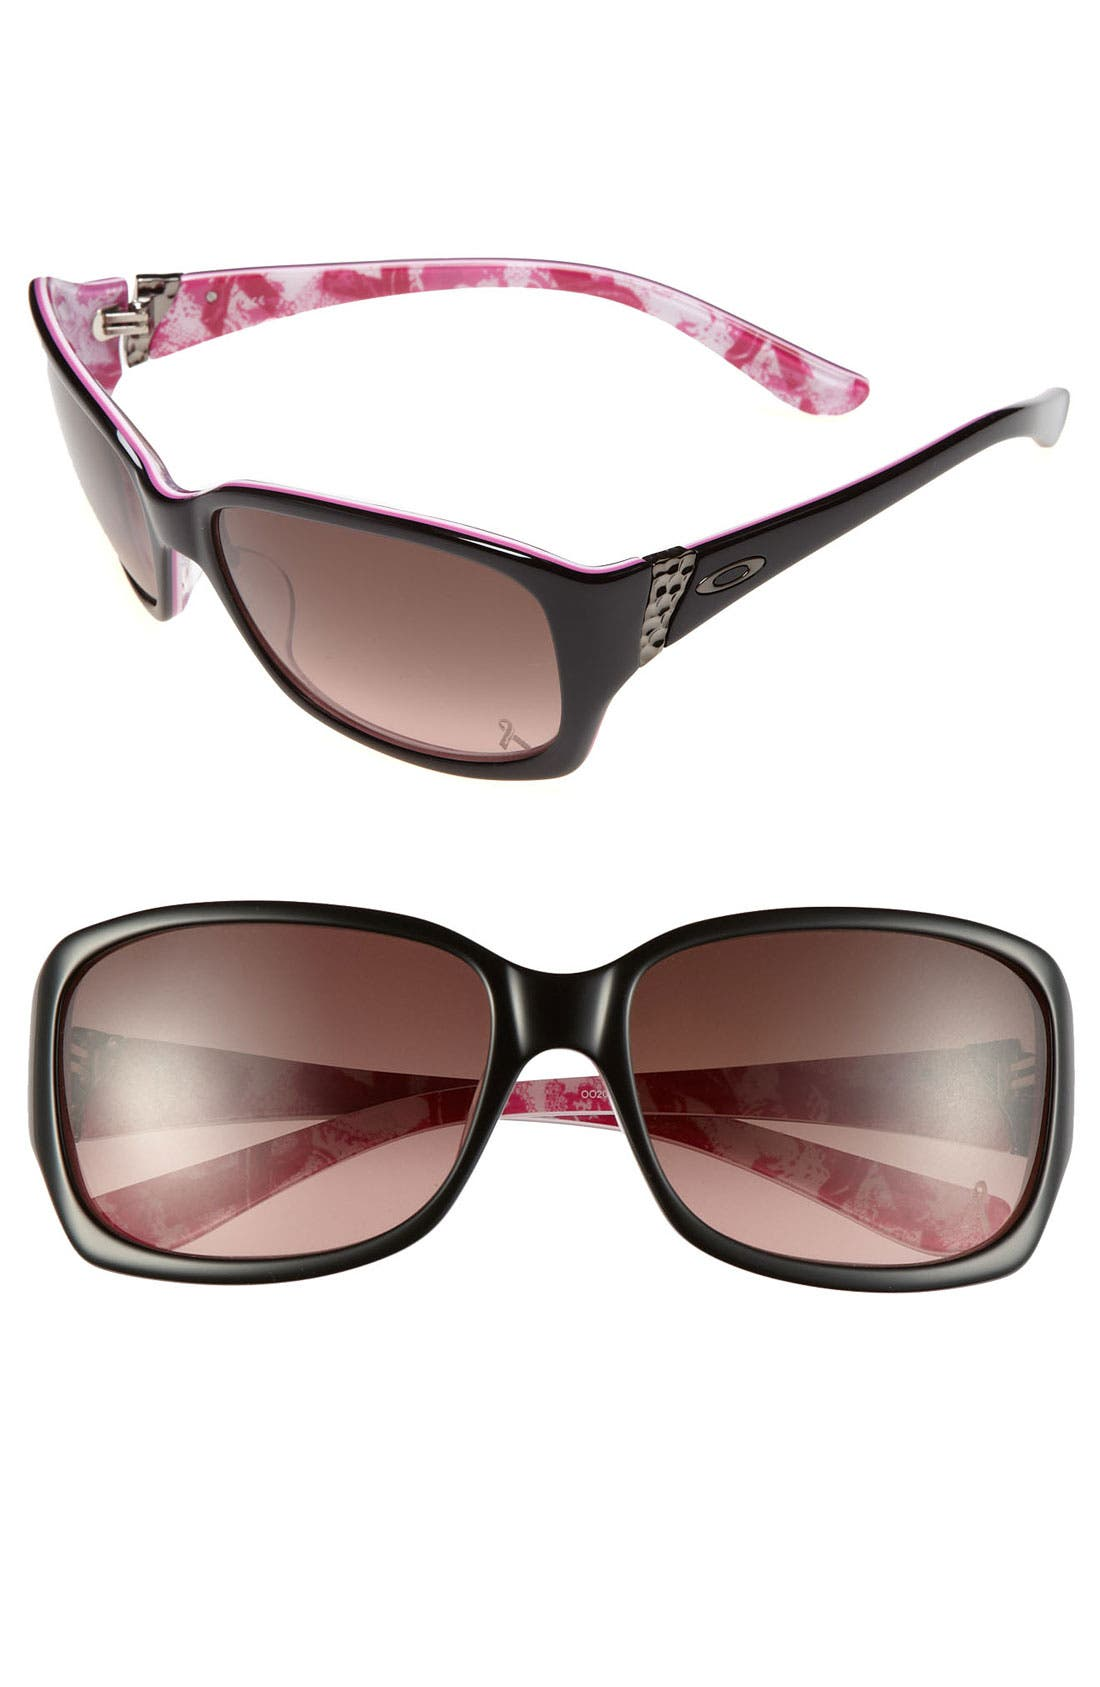 Main Image - Oakley 'Discreet® - Breast Cancer Awareness Edition' 56mm Sunglasses